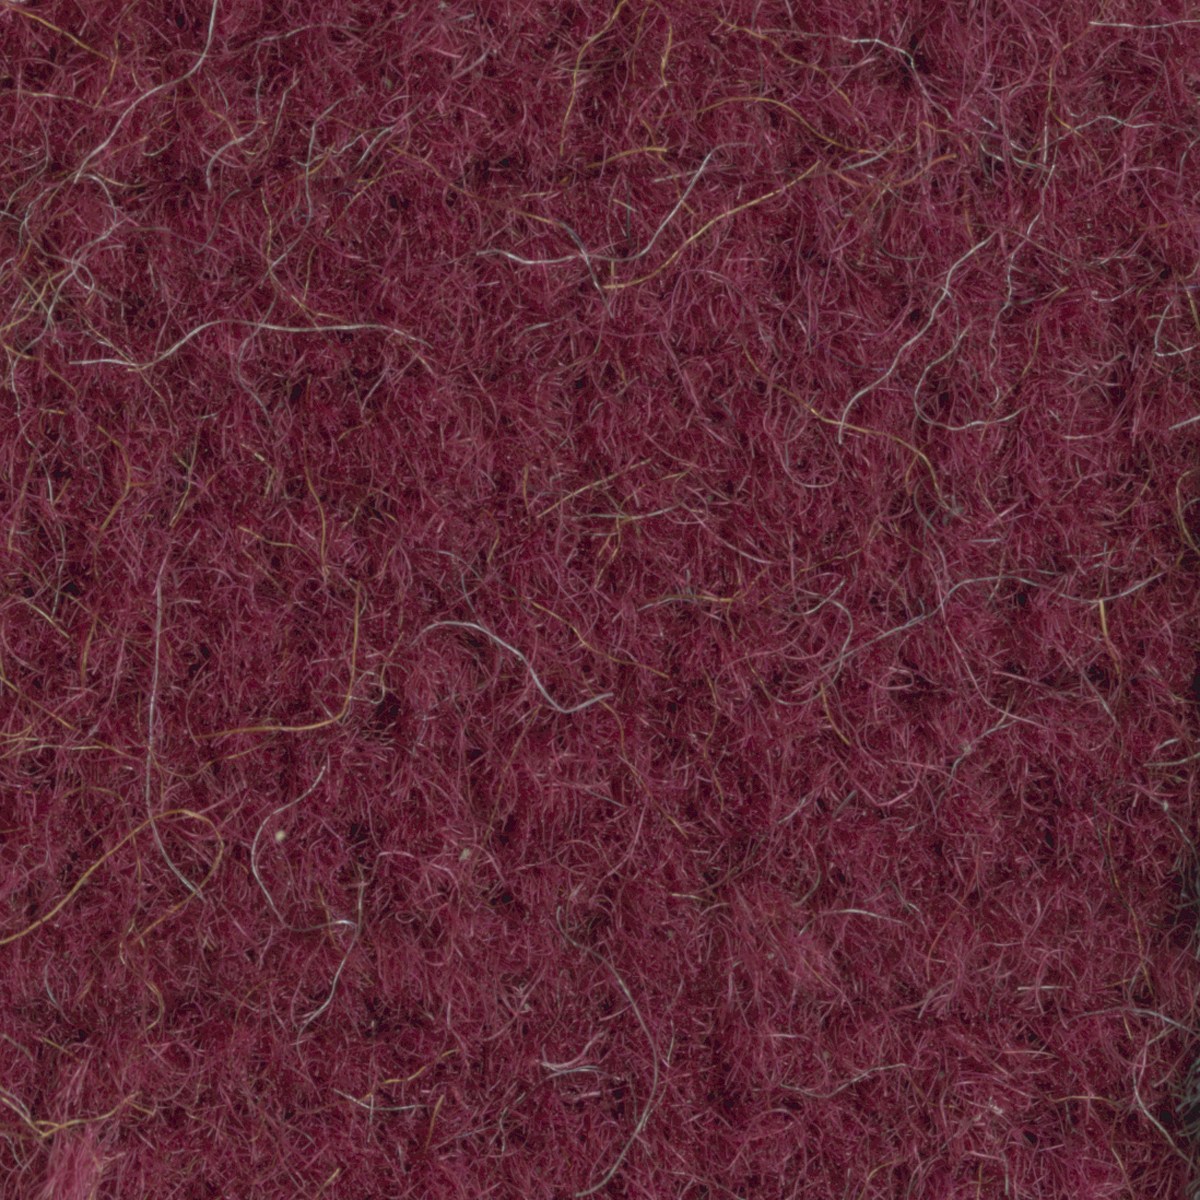 MAROON ENGLISH WILTON II WOOL CARPET